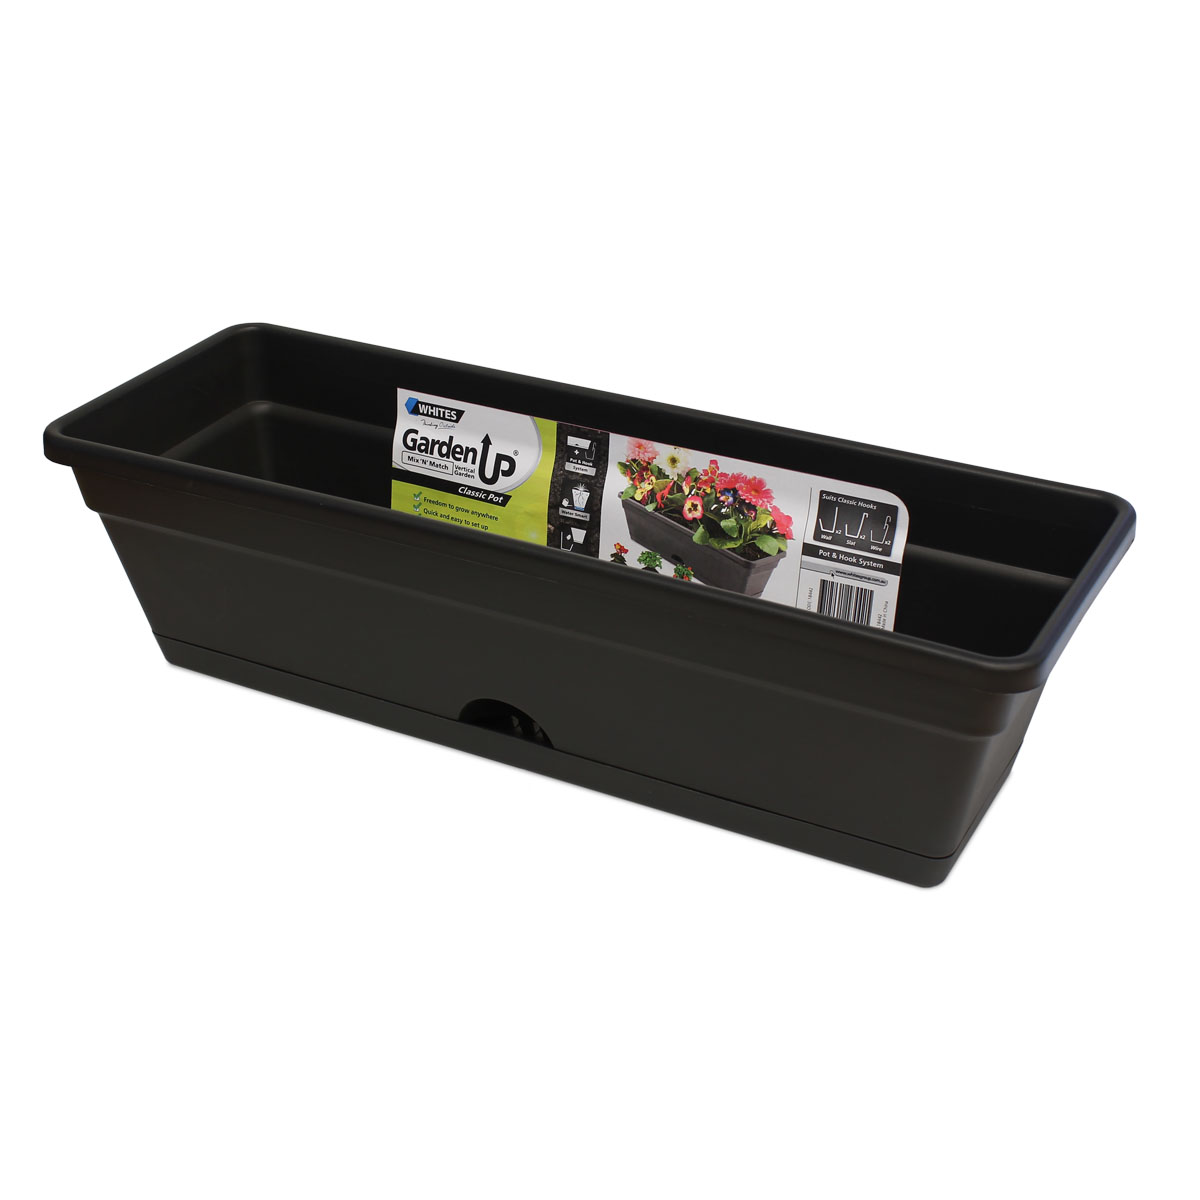 18442 Garden Up Classic Pot Charcoal